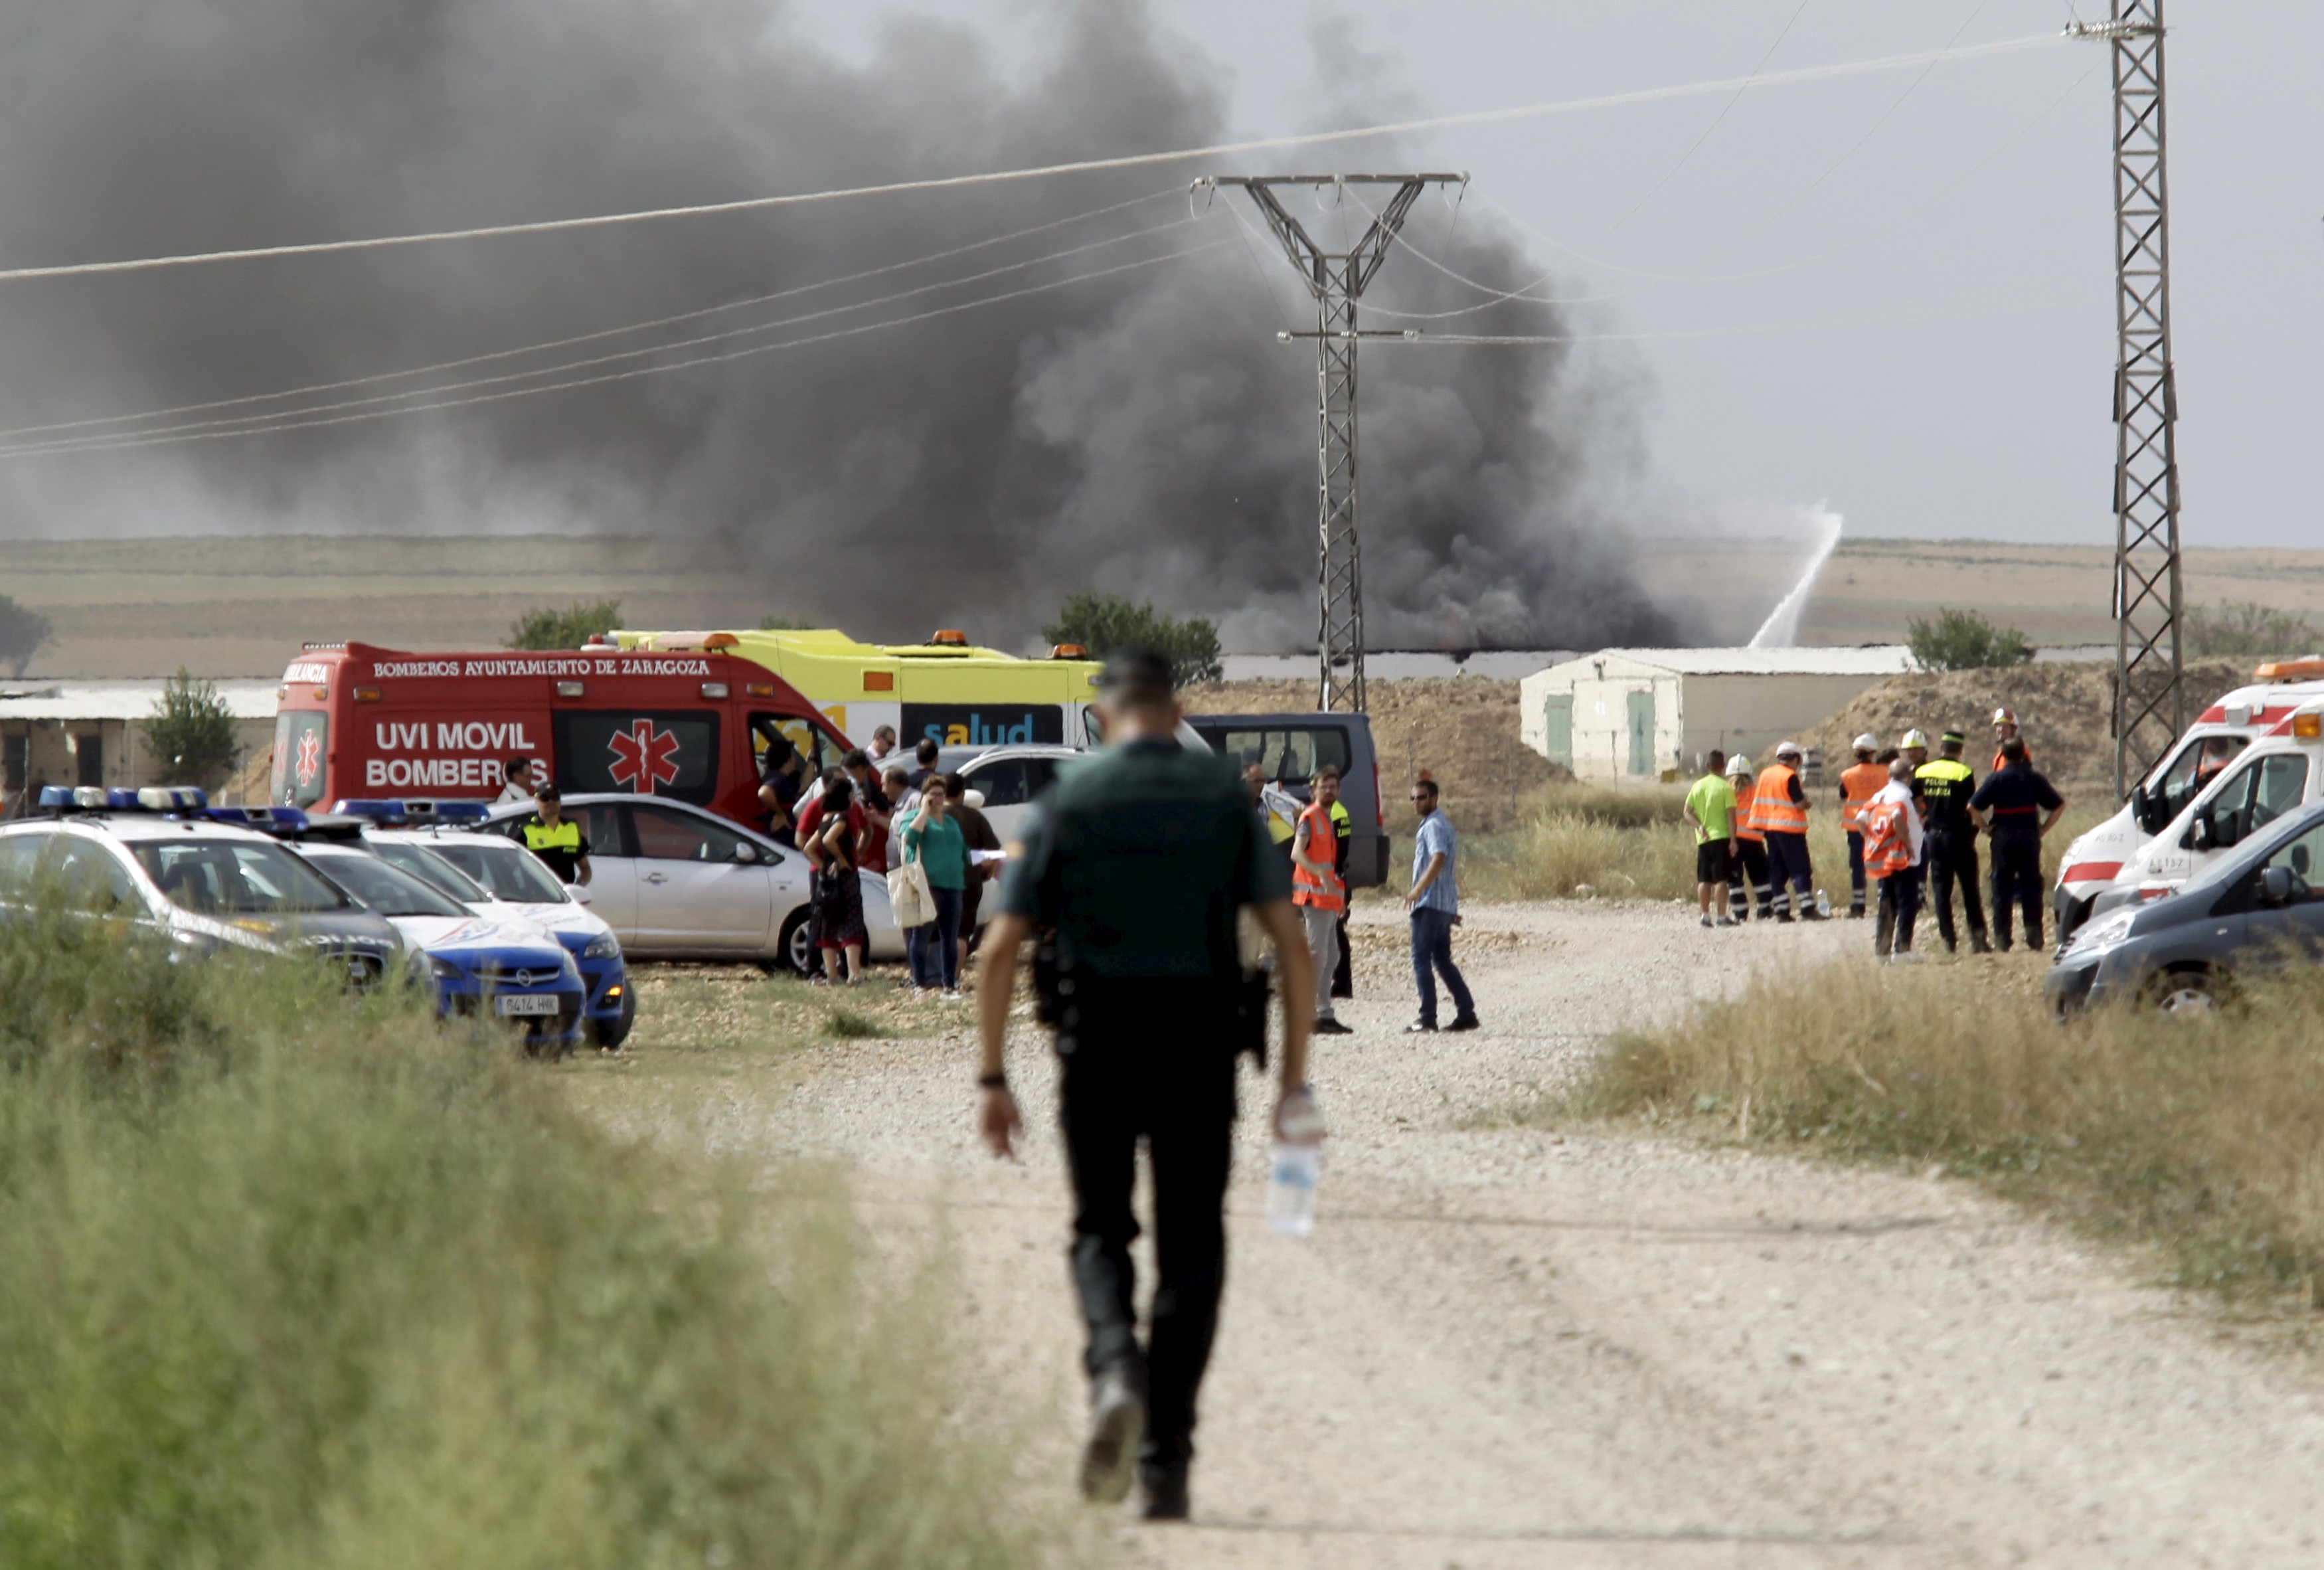 A column of smoke rises from a factory after an explosion at a fireworks factory on the outskirts of Zaragoza, northeastern Spain, August 31, 2015. Photo: Reuters